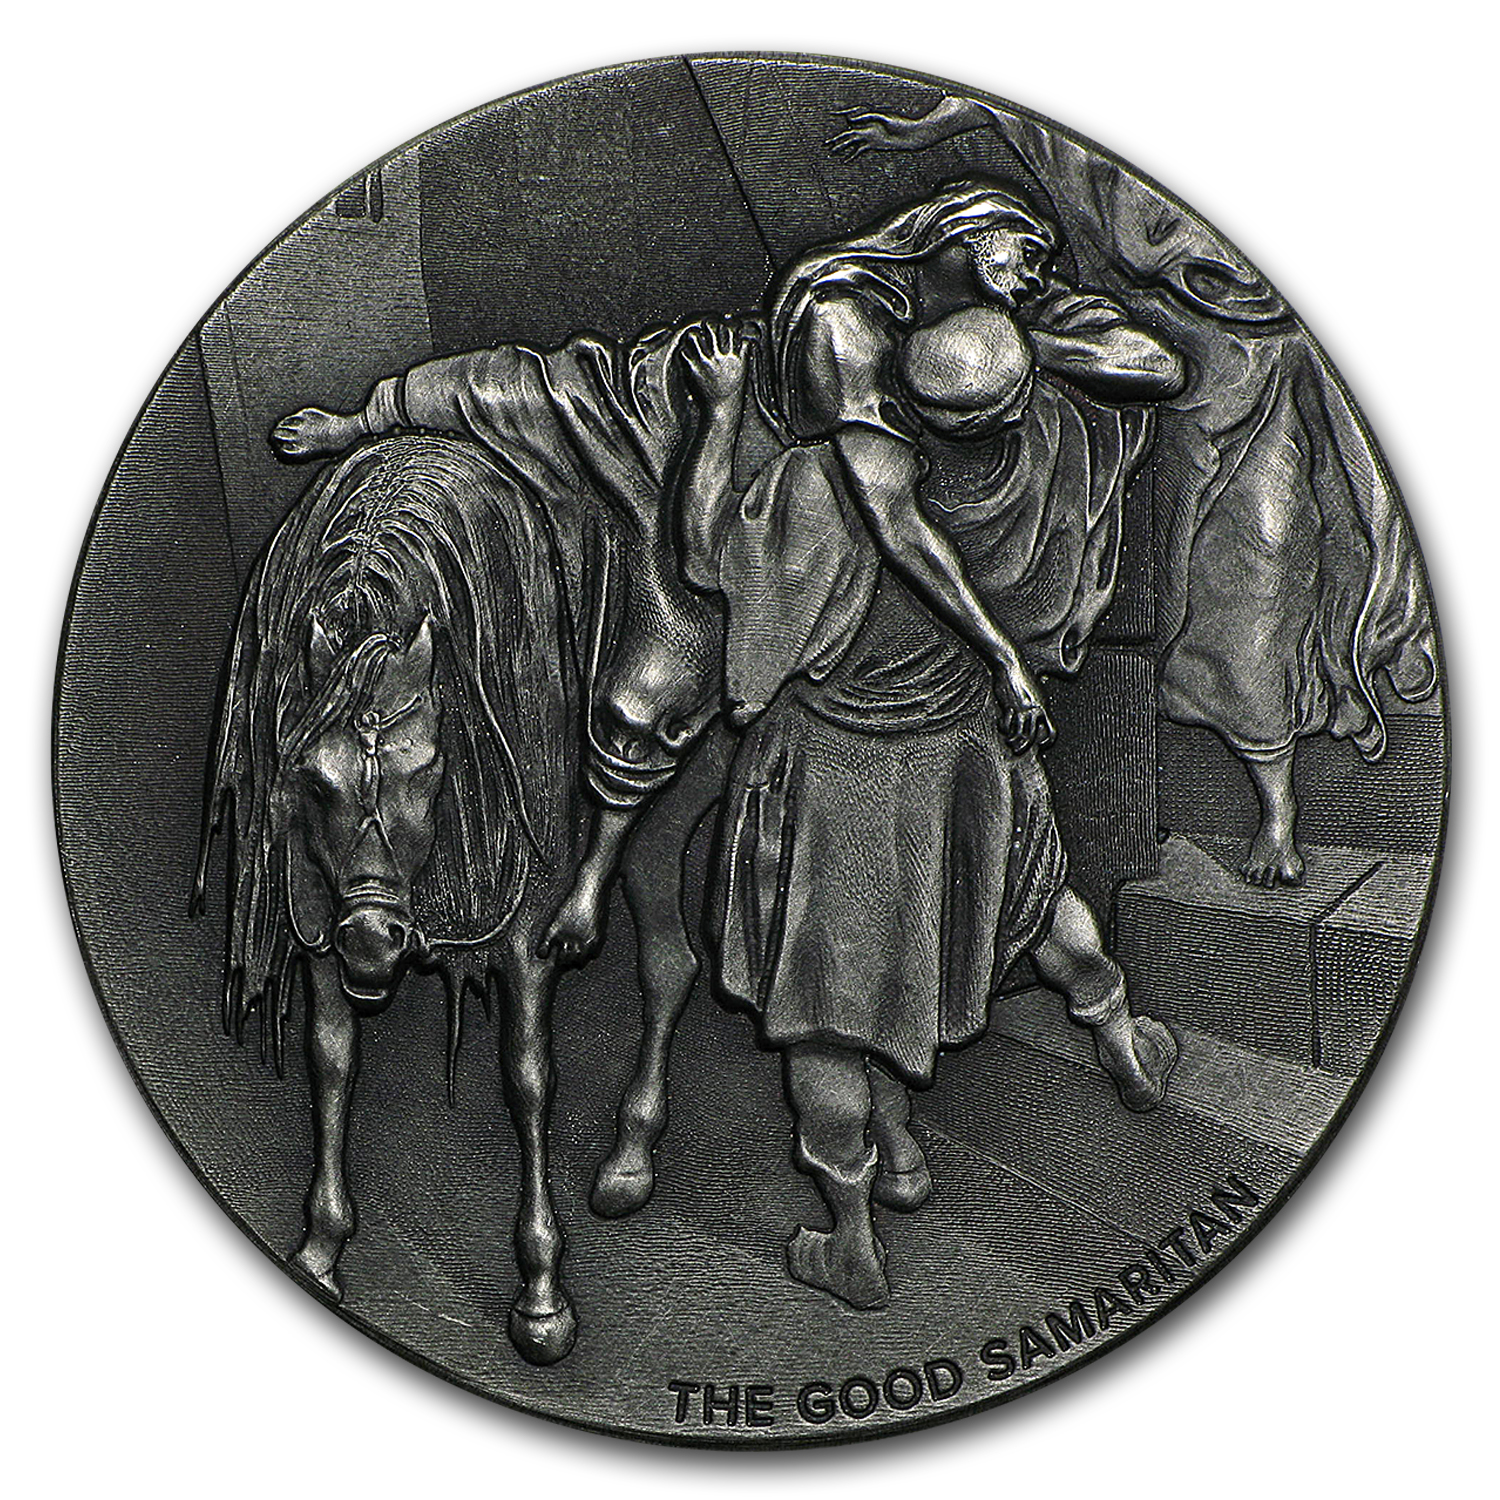 2 oz Silver Coin - Biblical Series (The Good Samaritan)